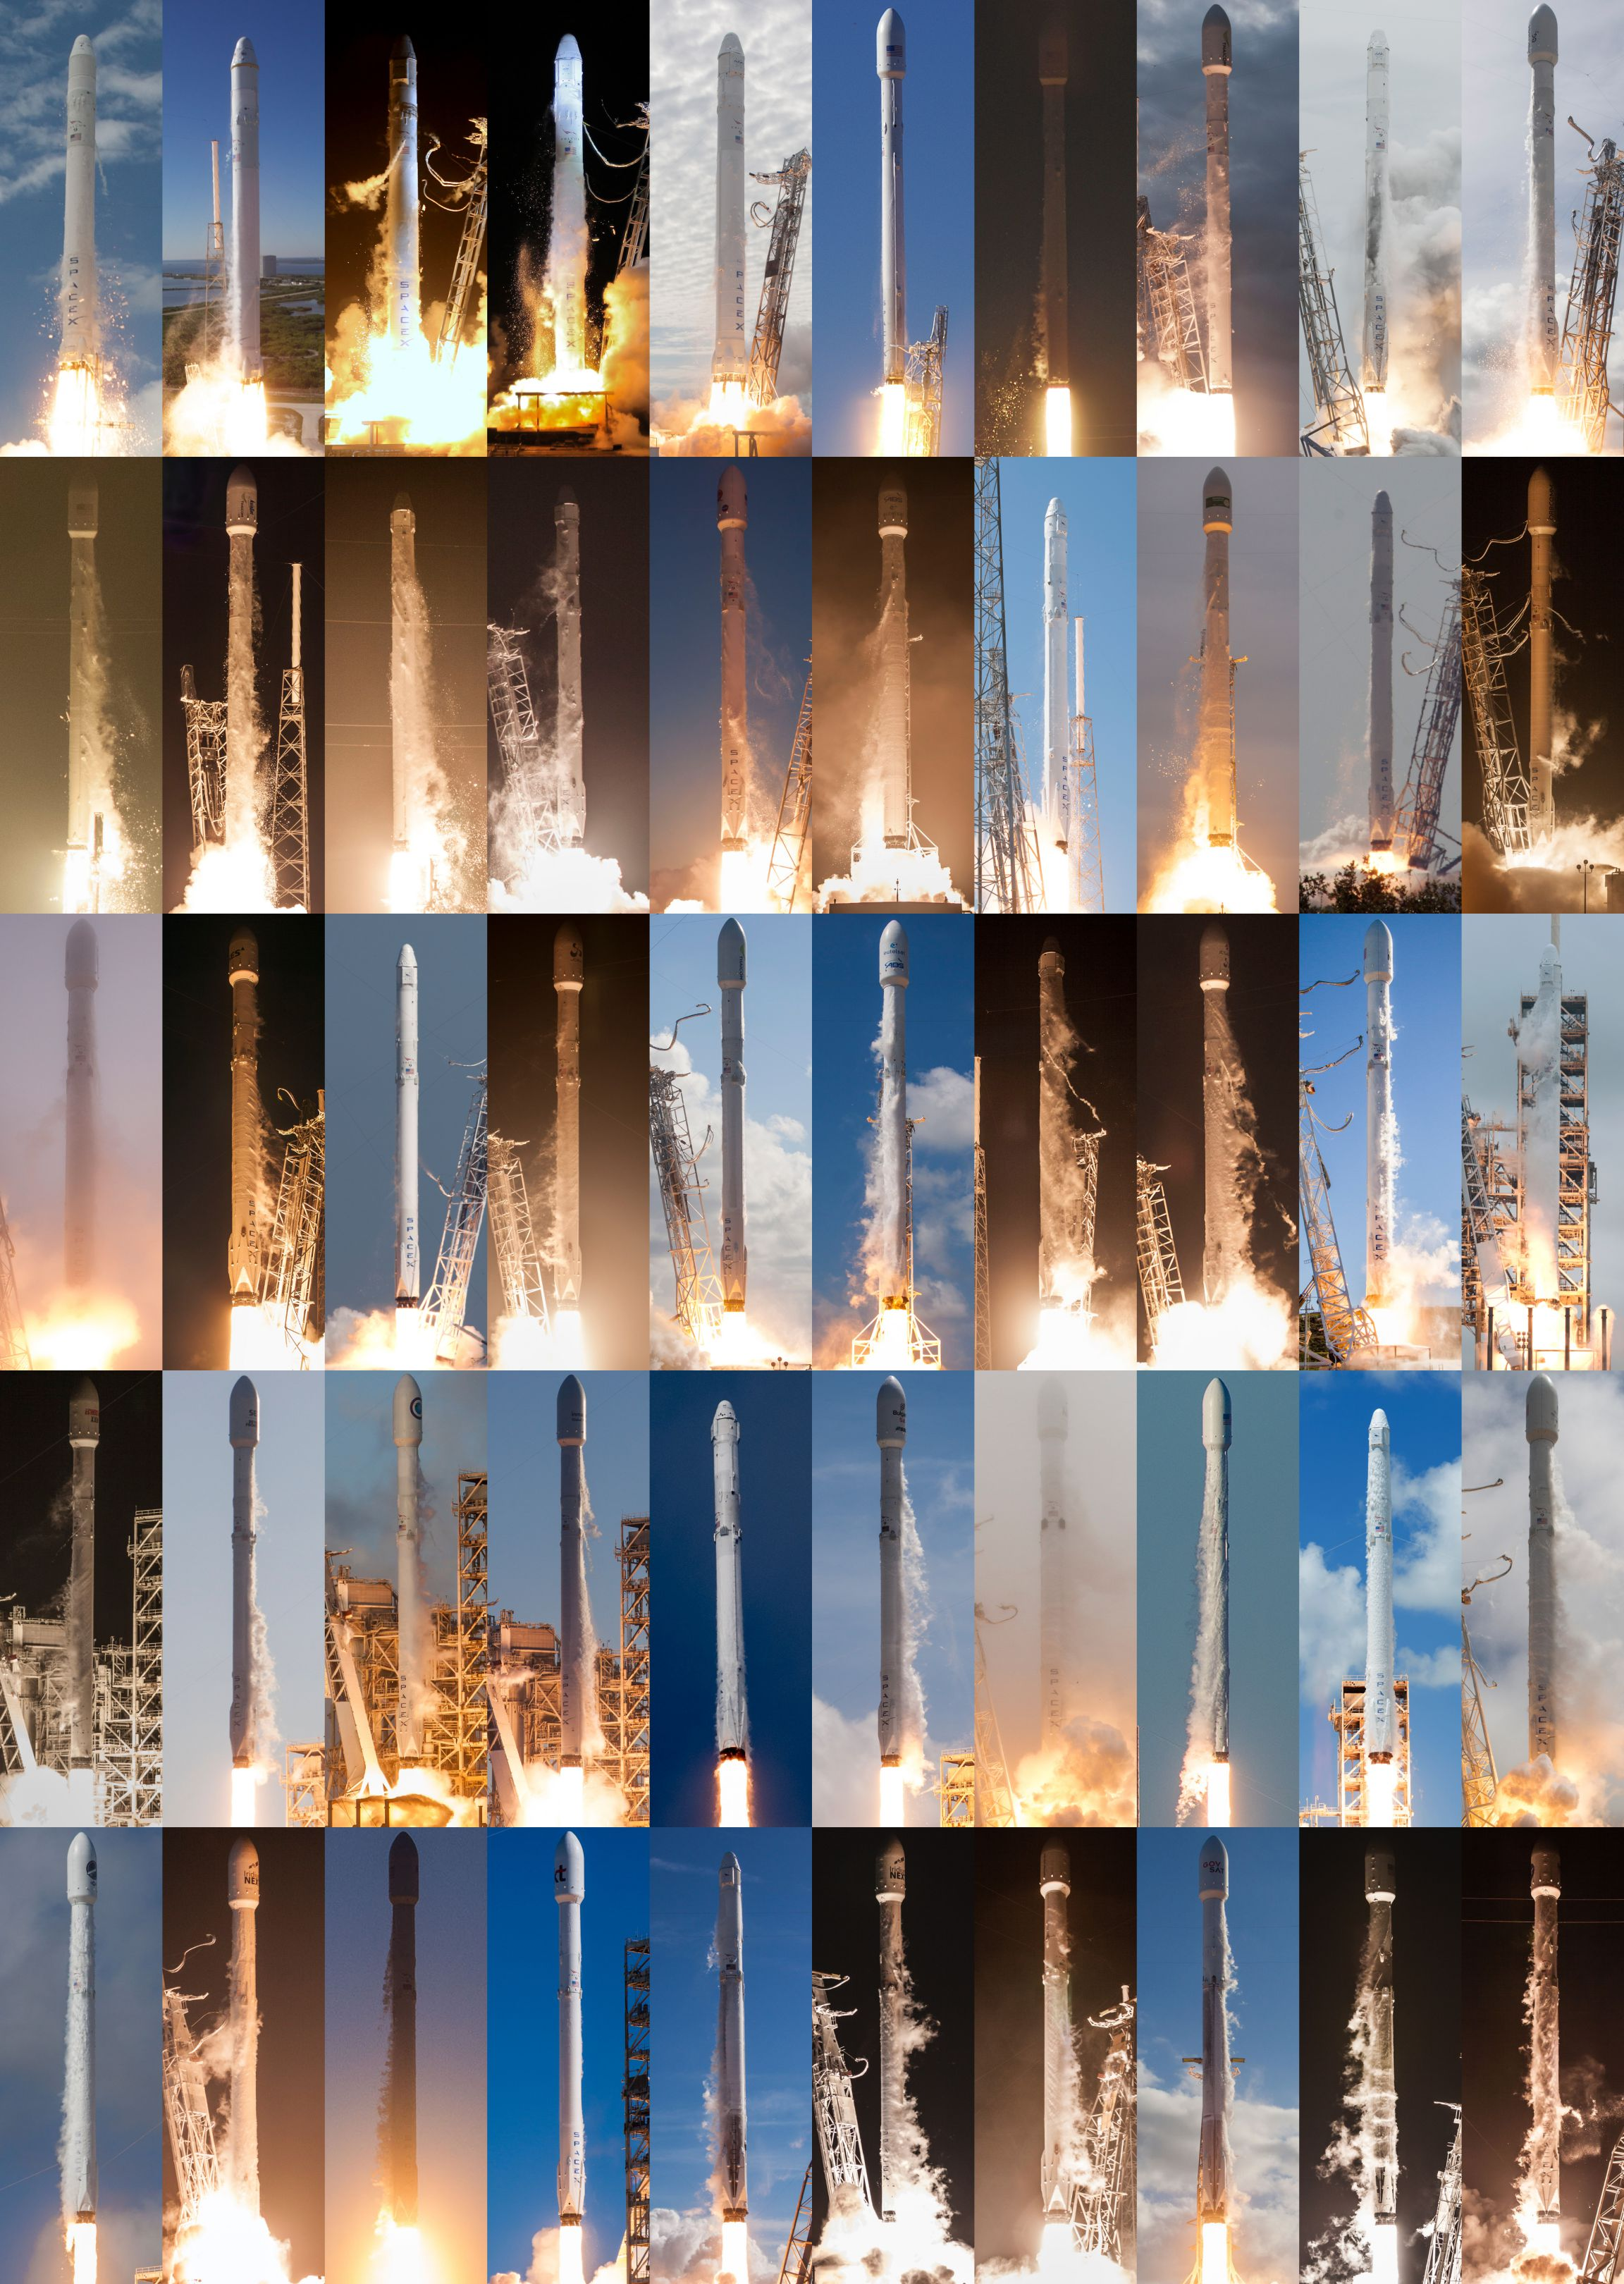 50 launches of Falcon 9 (ethan829)(c)